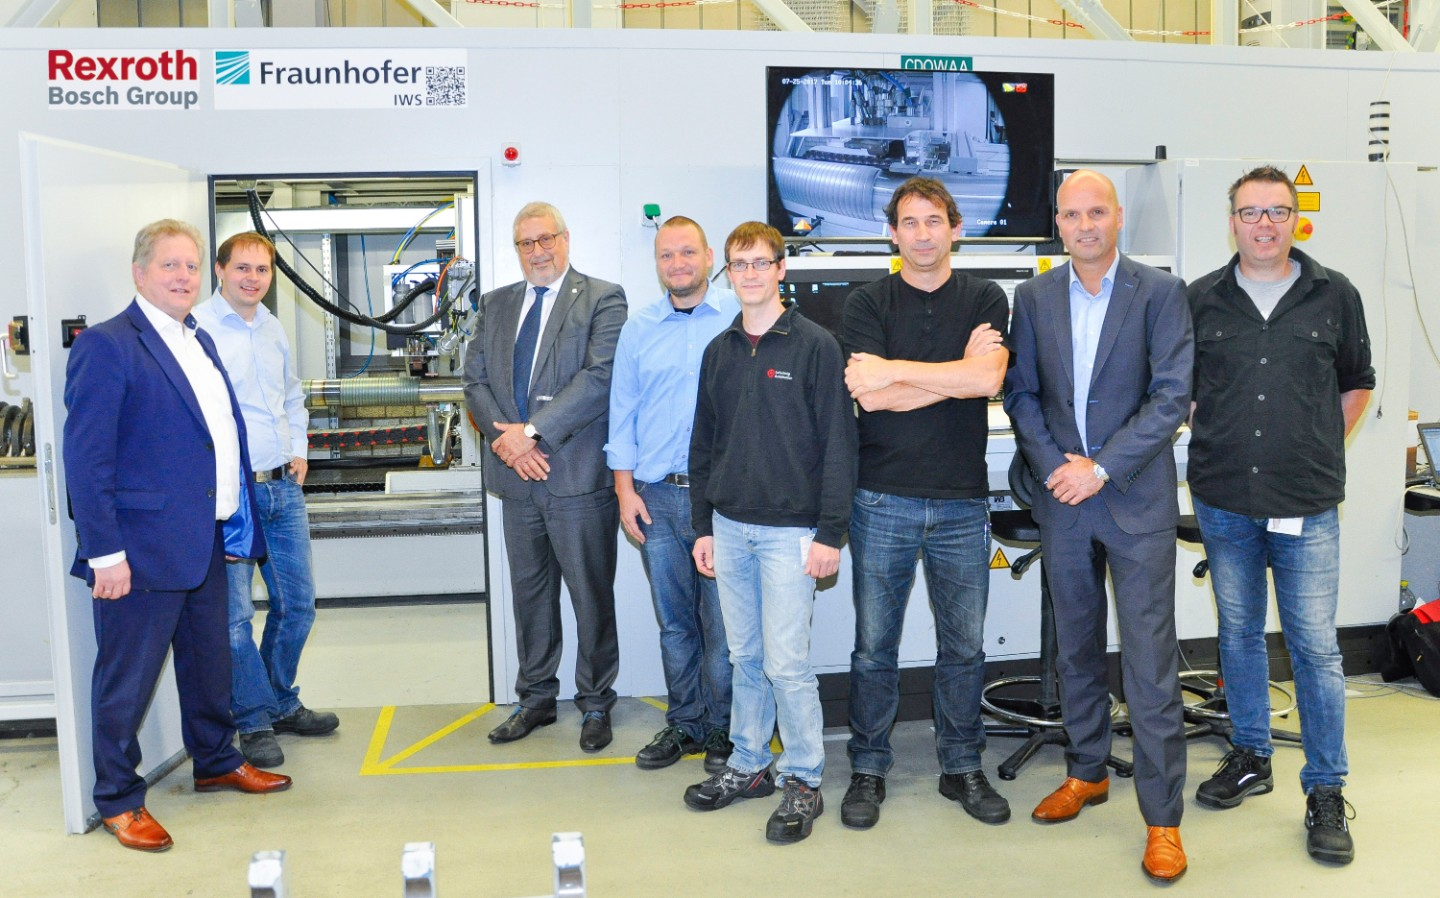 Inaugurated the modified system: Dipl.-Ing. Bernd Bodenstedt (l.) and Prof. Dr. Eckhard Beyer (3. f. l.) with Holger Hillig (2. f. l.), Jan Hannweber (4. f. l., both Fraunhofer IWS), Rene Weidauer (LSA, 5. f. l.) as well as Uvar Broug, Arthur Brussaard and Roy Orbon (Bosch Rexroth, f. l.).